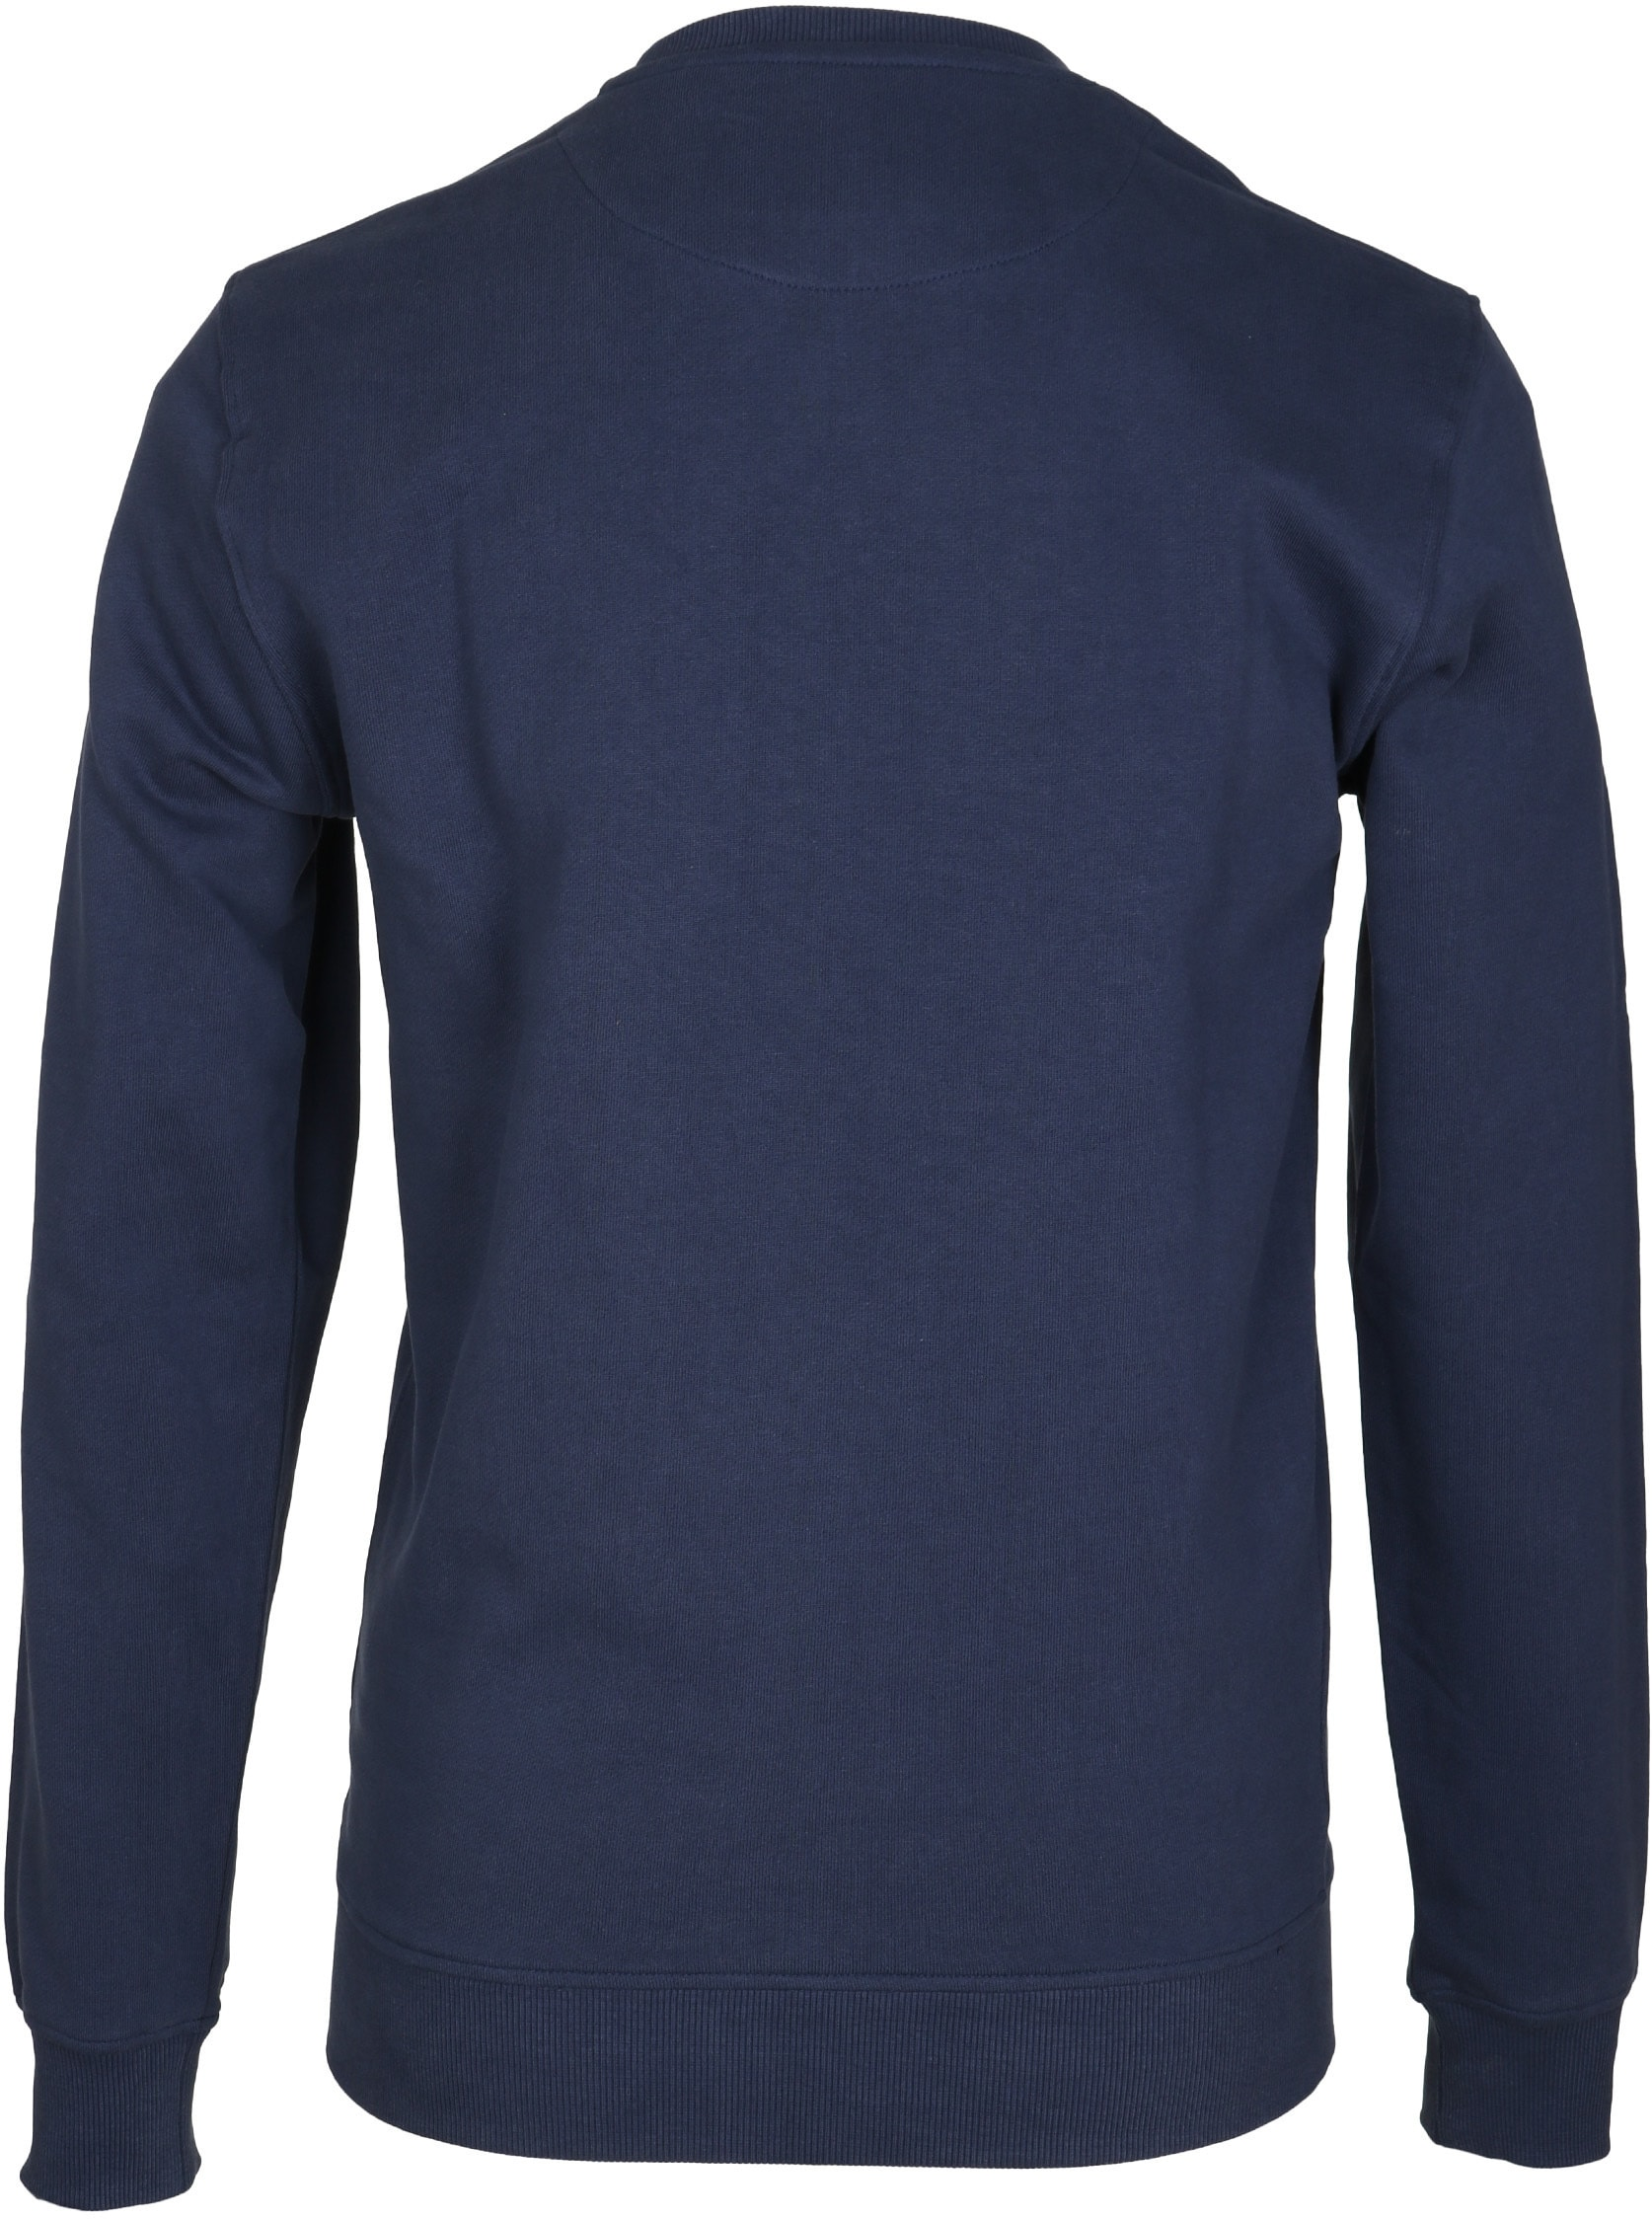 Suitable Sweater Uni Navy foto 2